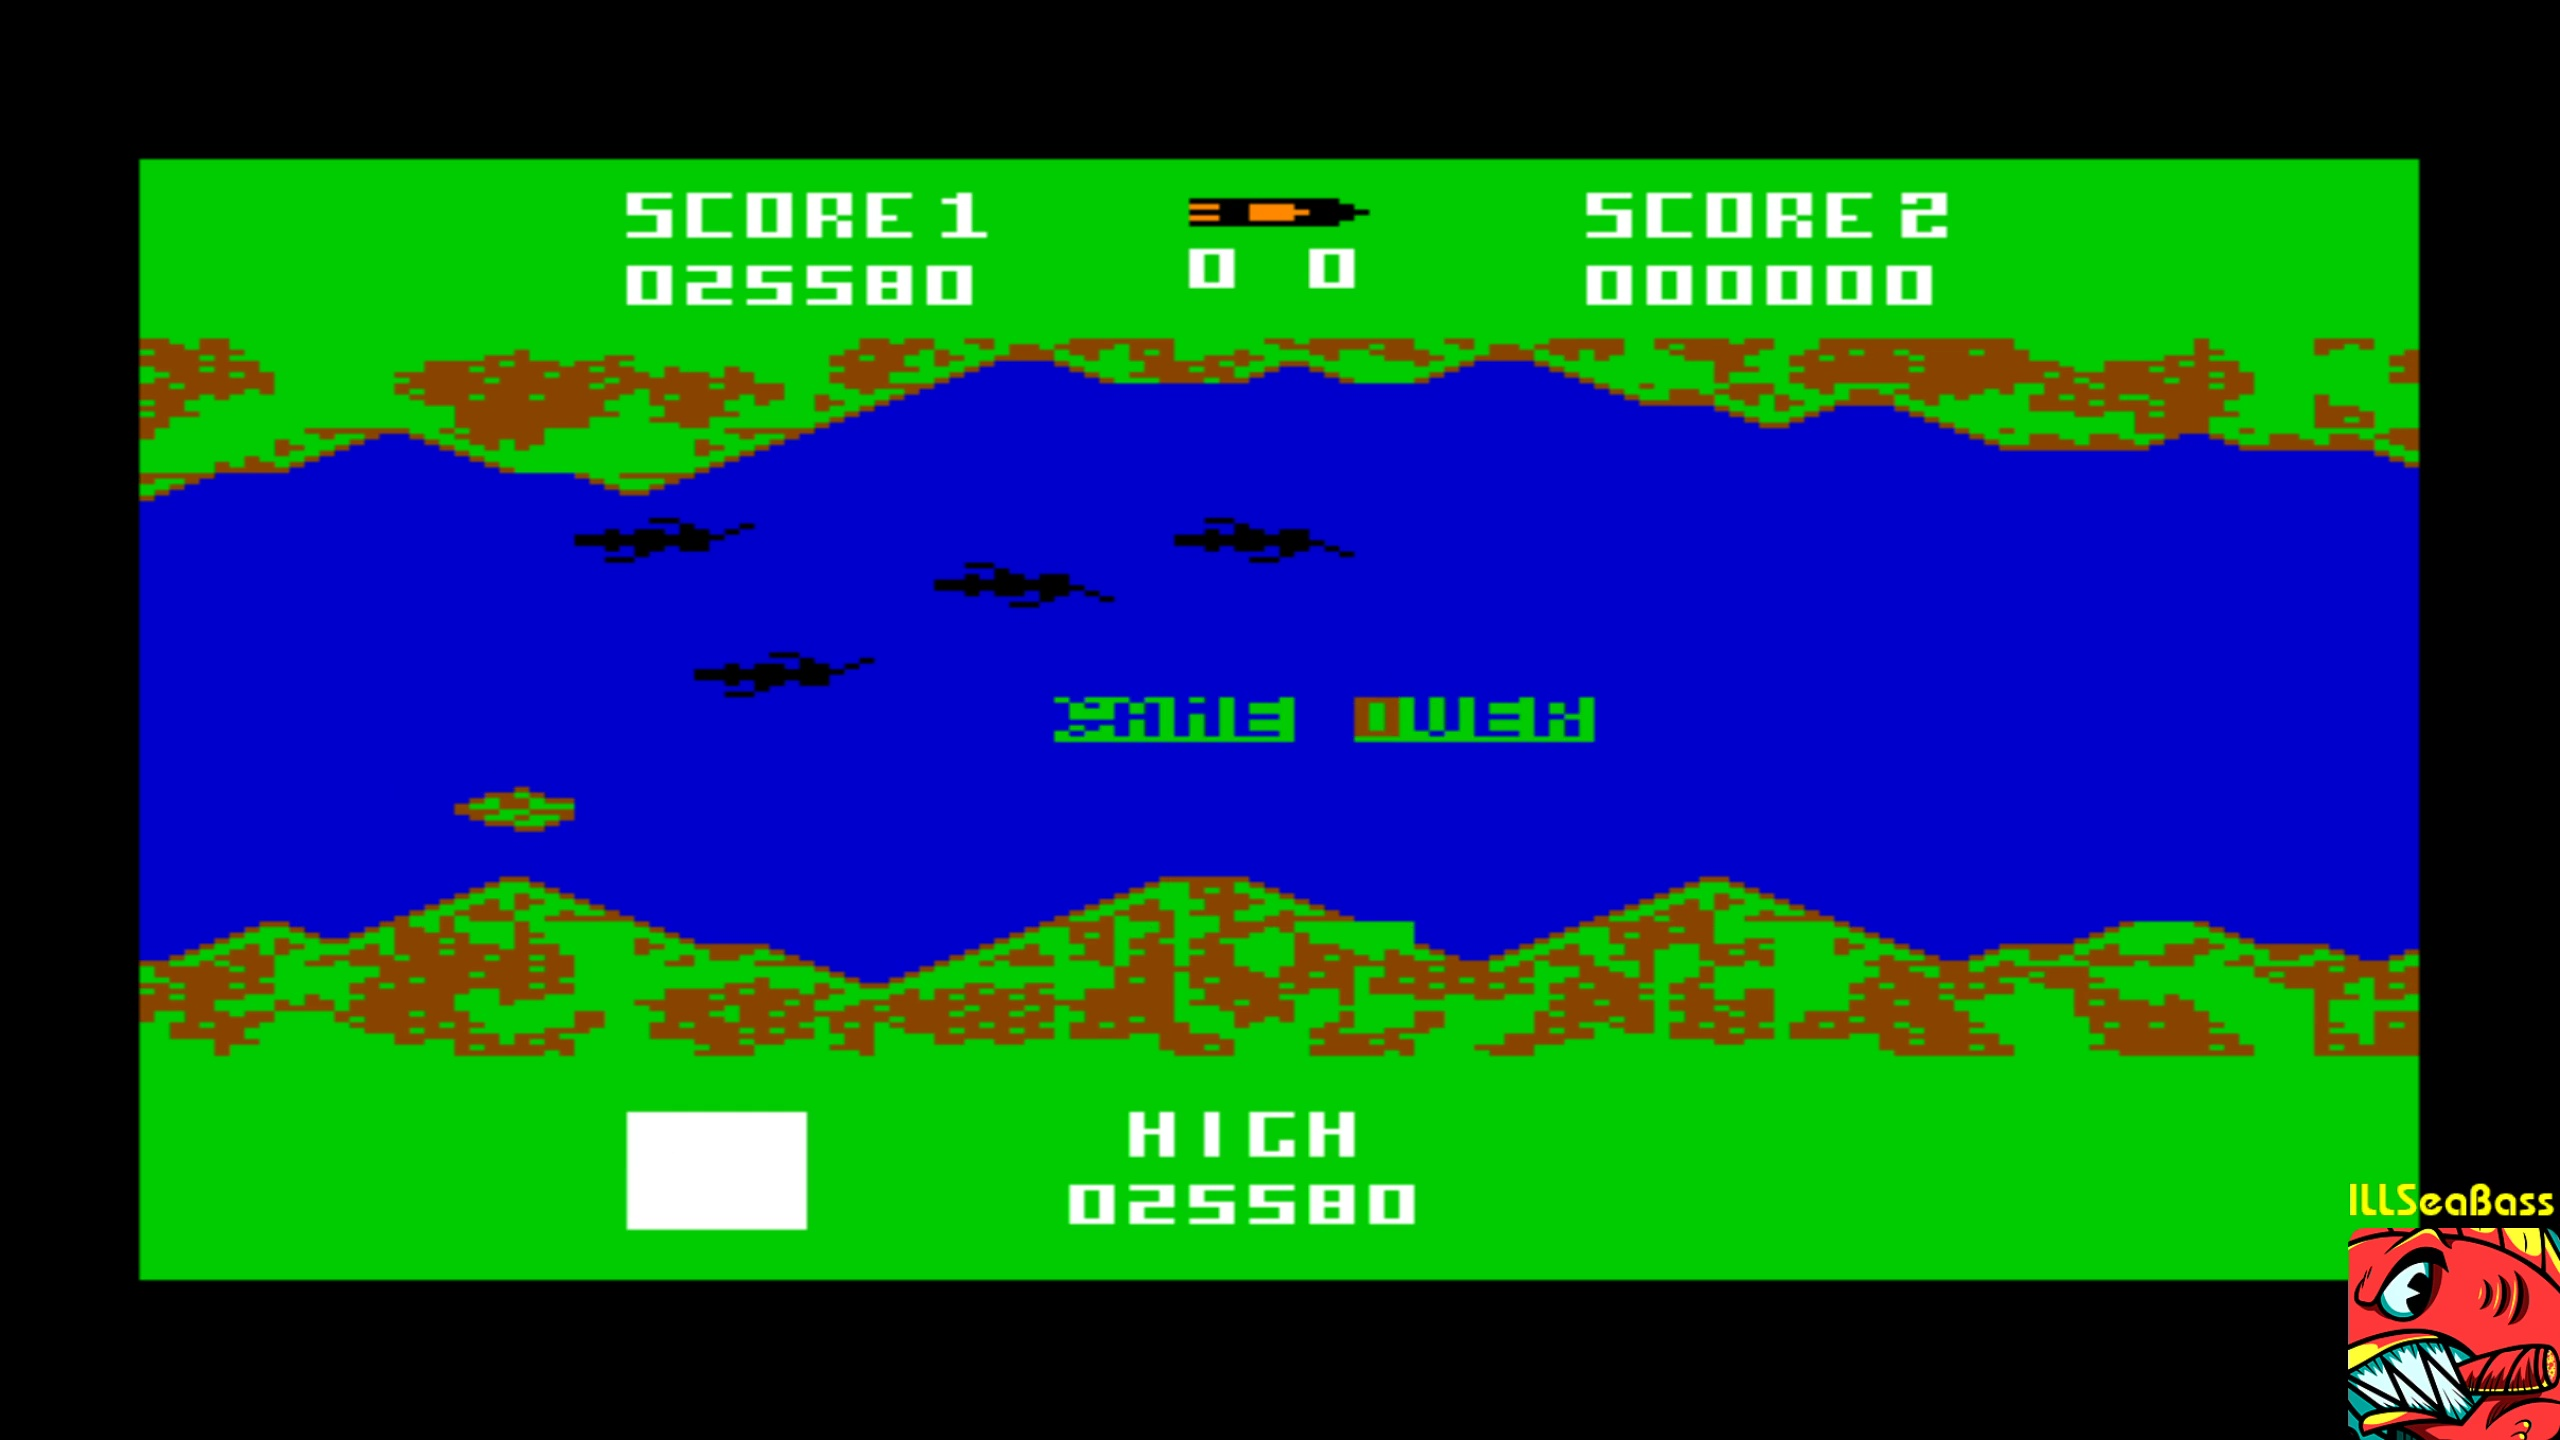 ILLSeaBass: River Rescue (Commodore 64 Emulated) 25,580 points on 2018-02-13 01:06:47